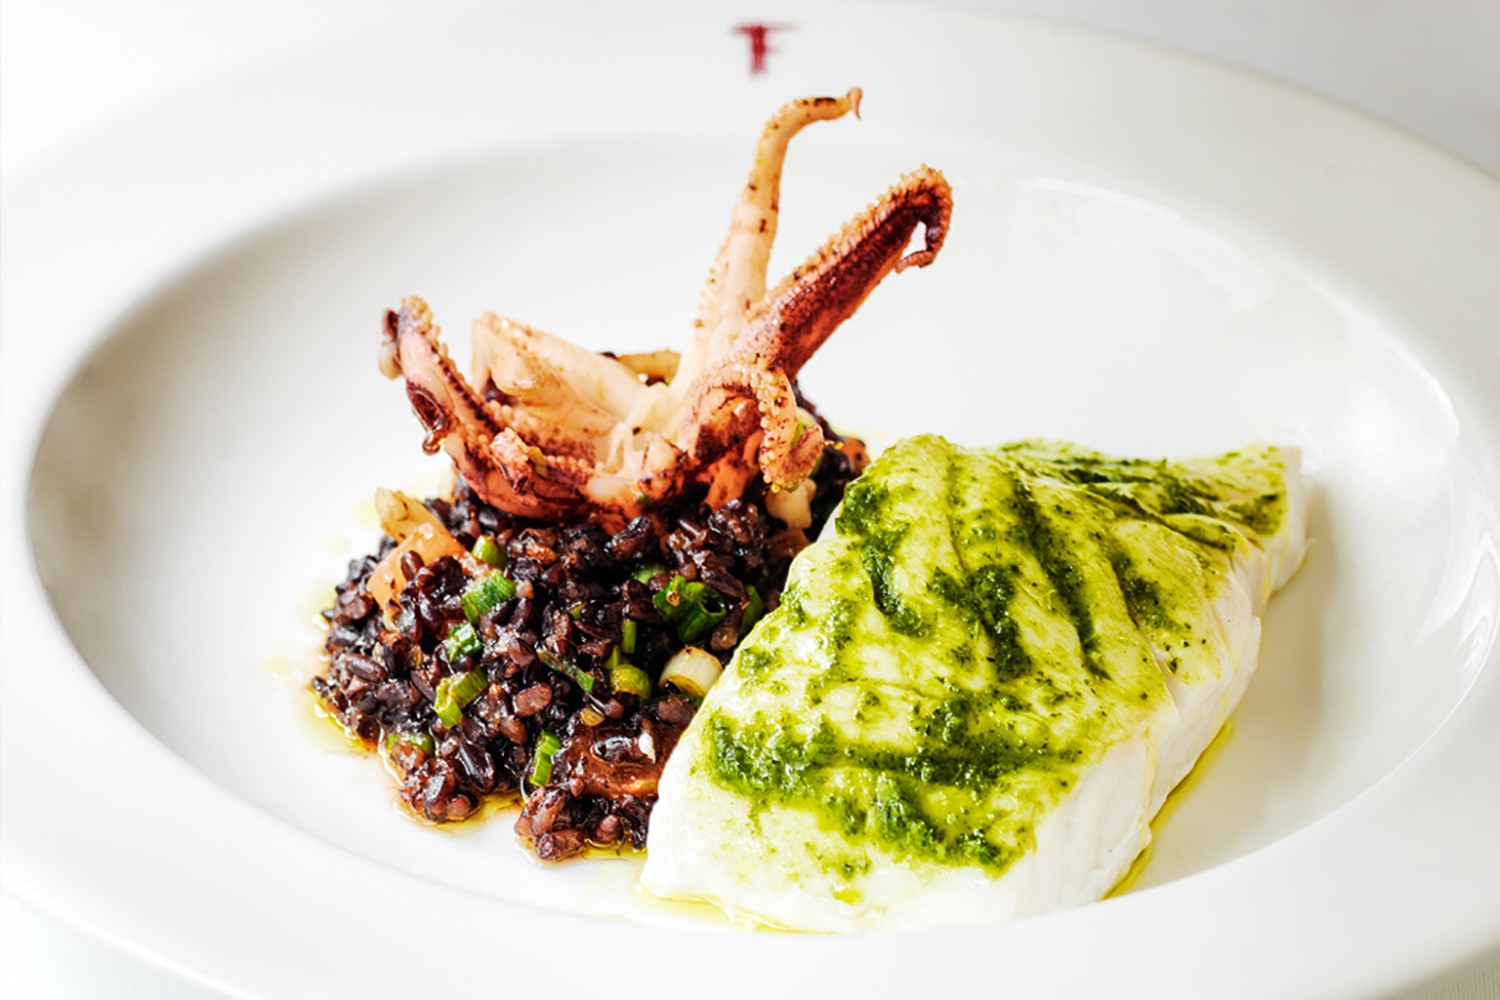 Franco's Restaurant Steamed Hake with Sauteed squid and black rice